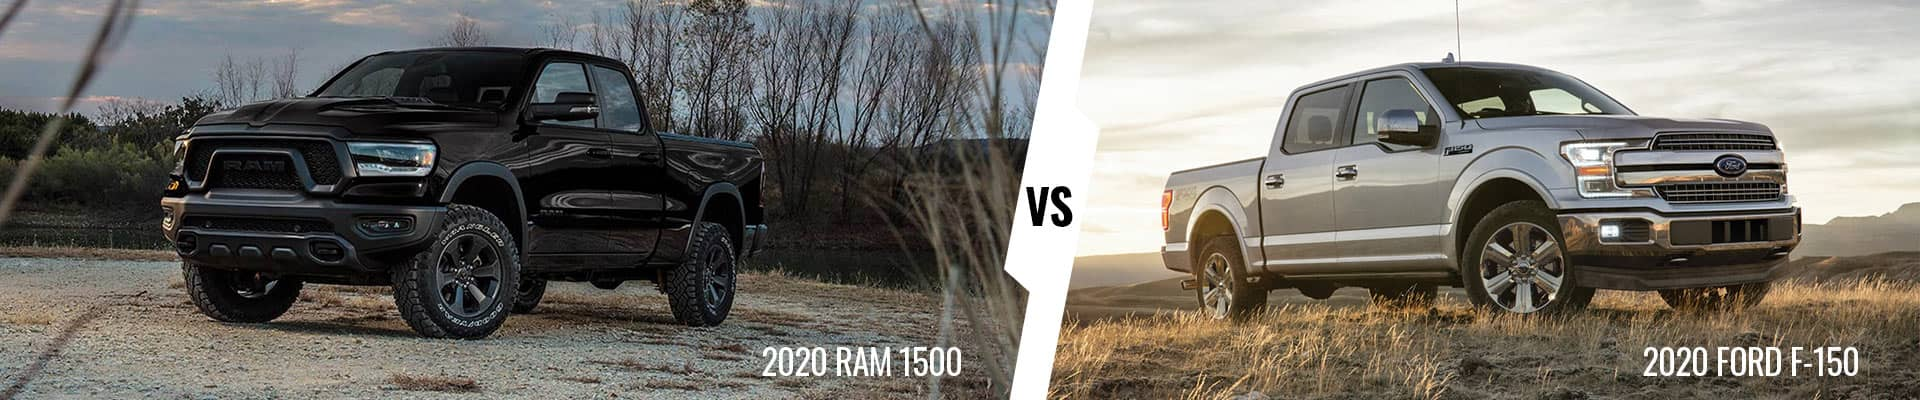 Comparing The 2020 Ram 1500 & 2020 Ford F-150 Pickups